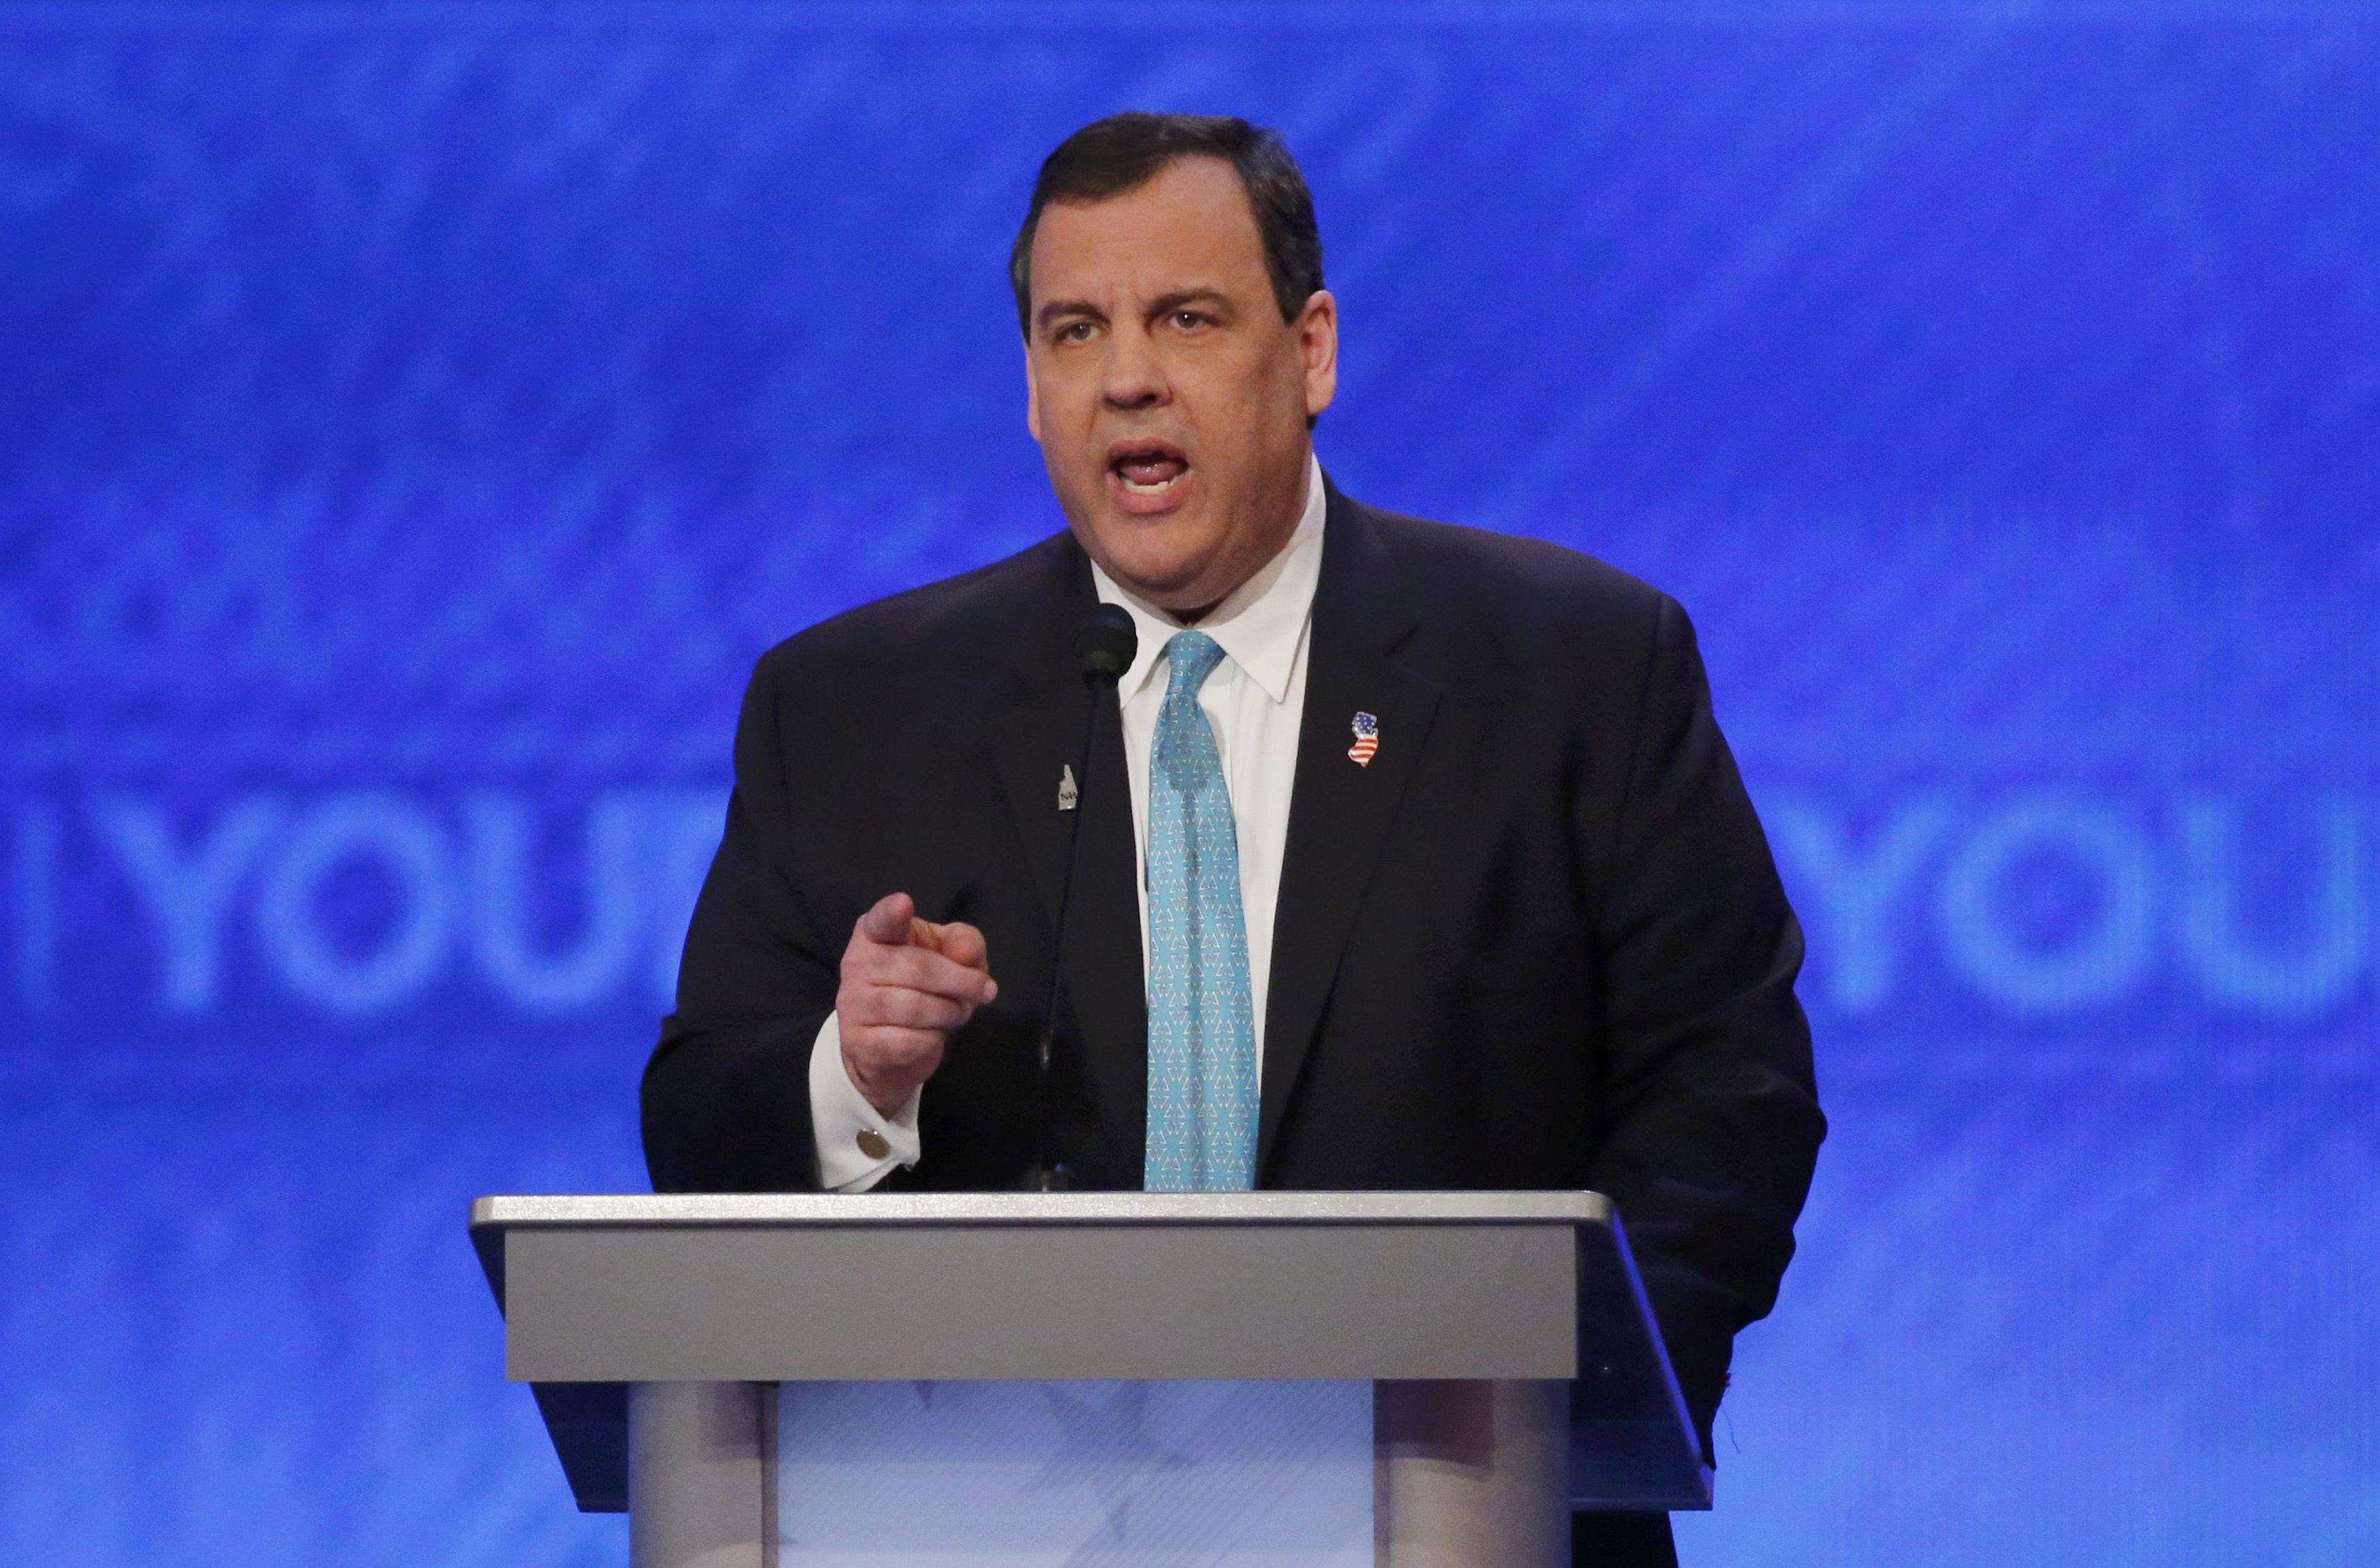 Chris Christie: Marco Rubio Is The Boy In The Bubble